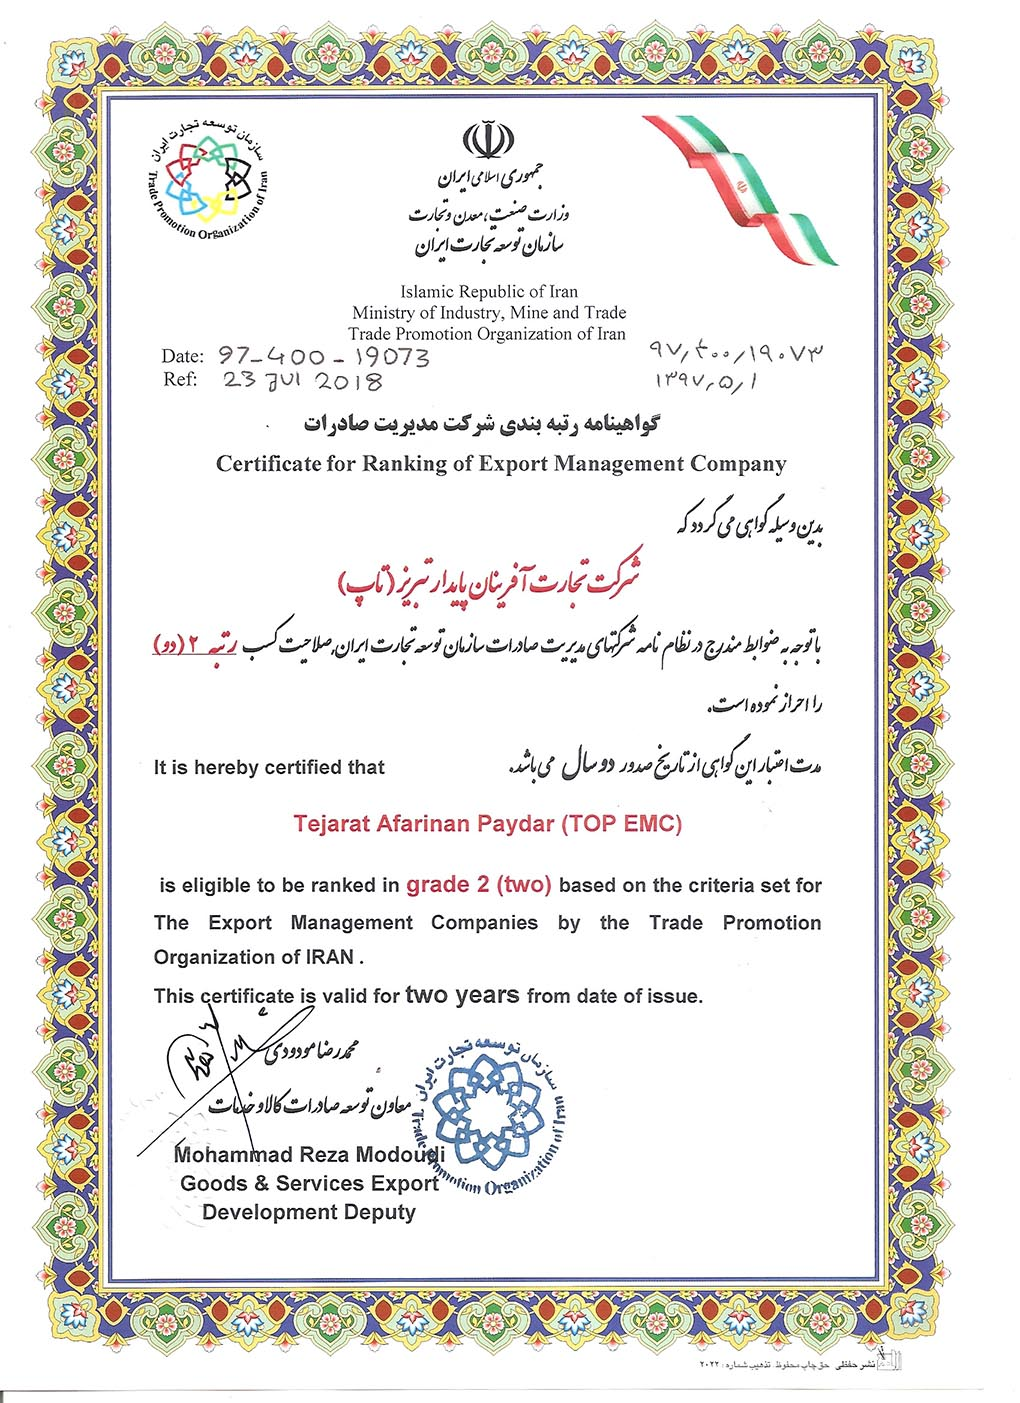 Certificate for EMC, issued by Iran Trade Promotion Organization